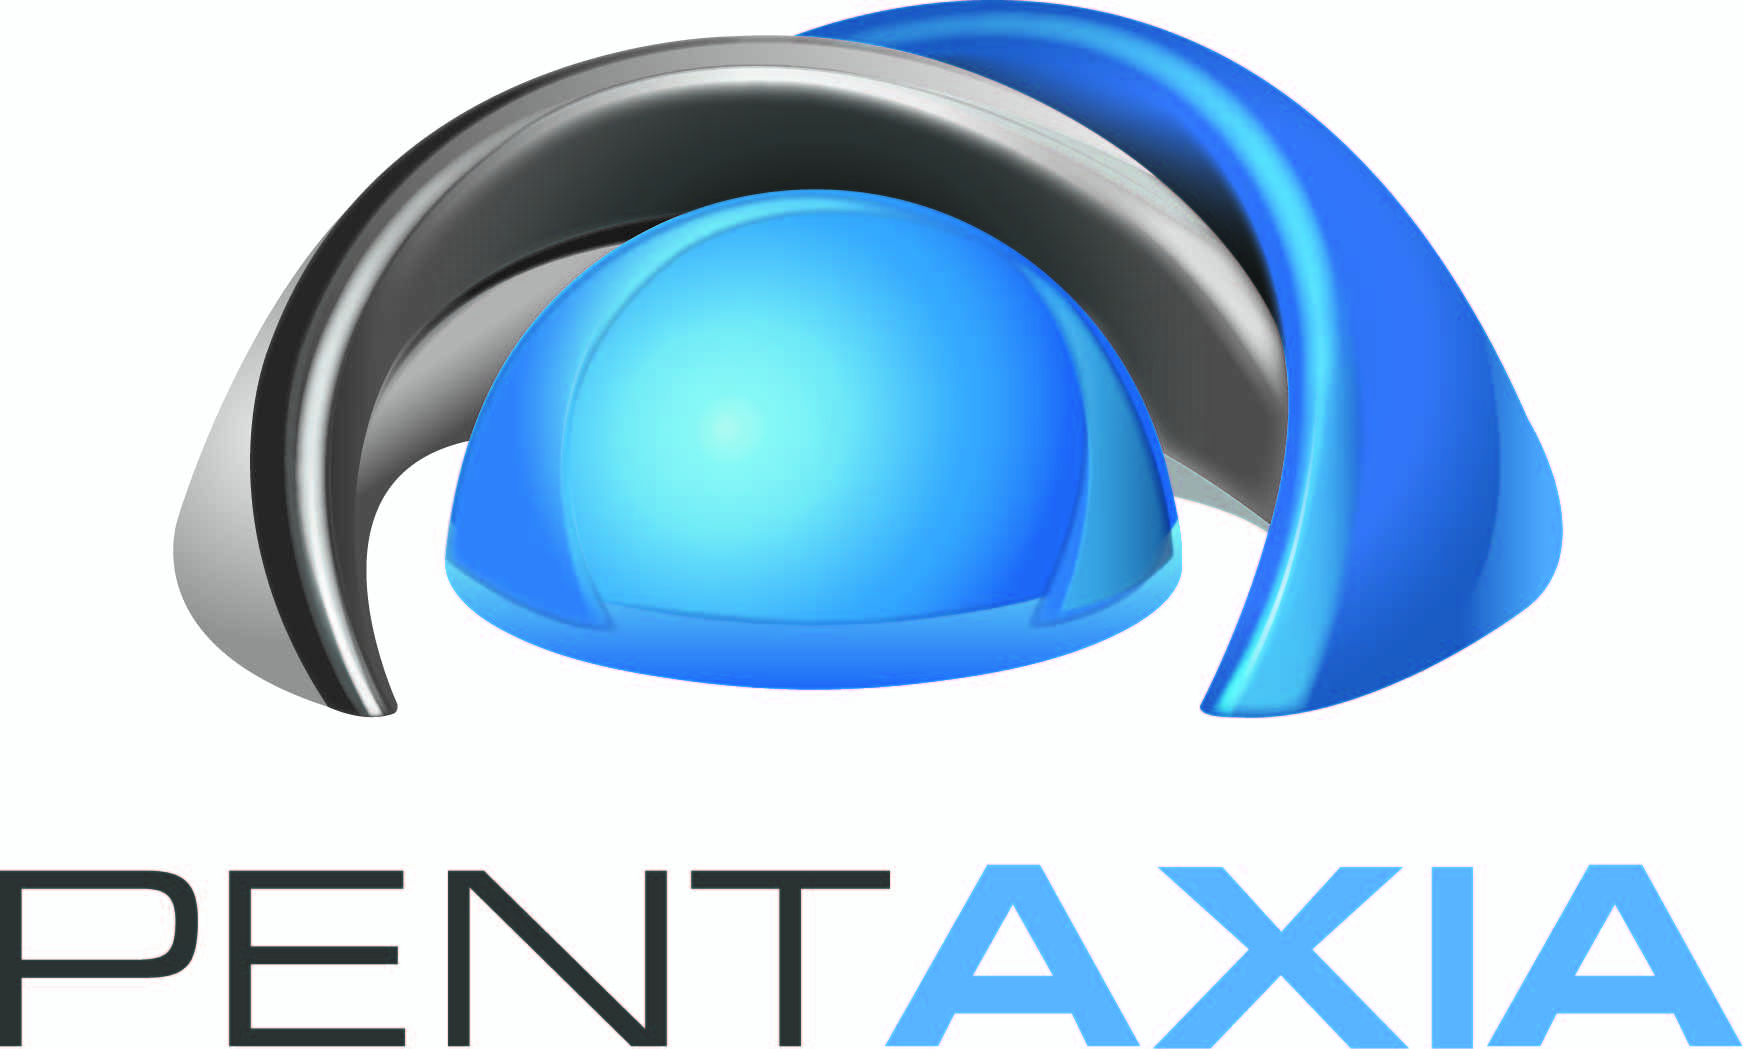 Pentaxia-logo-low-res